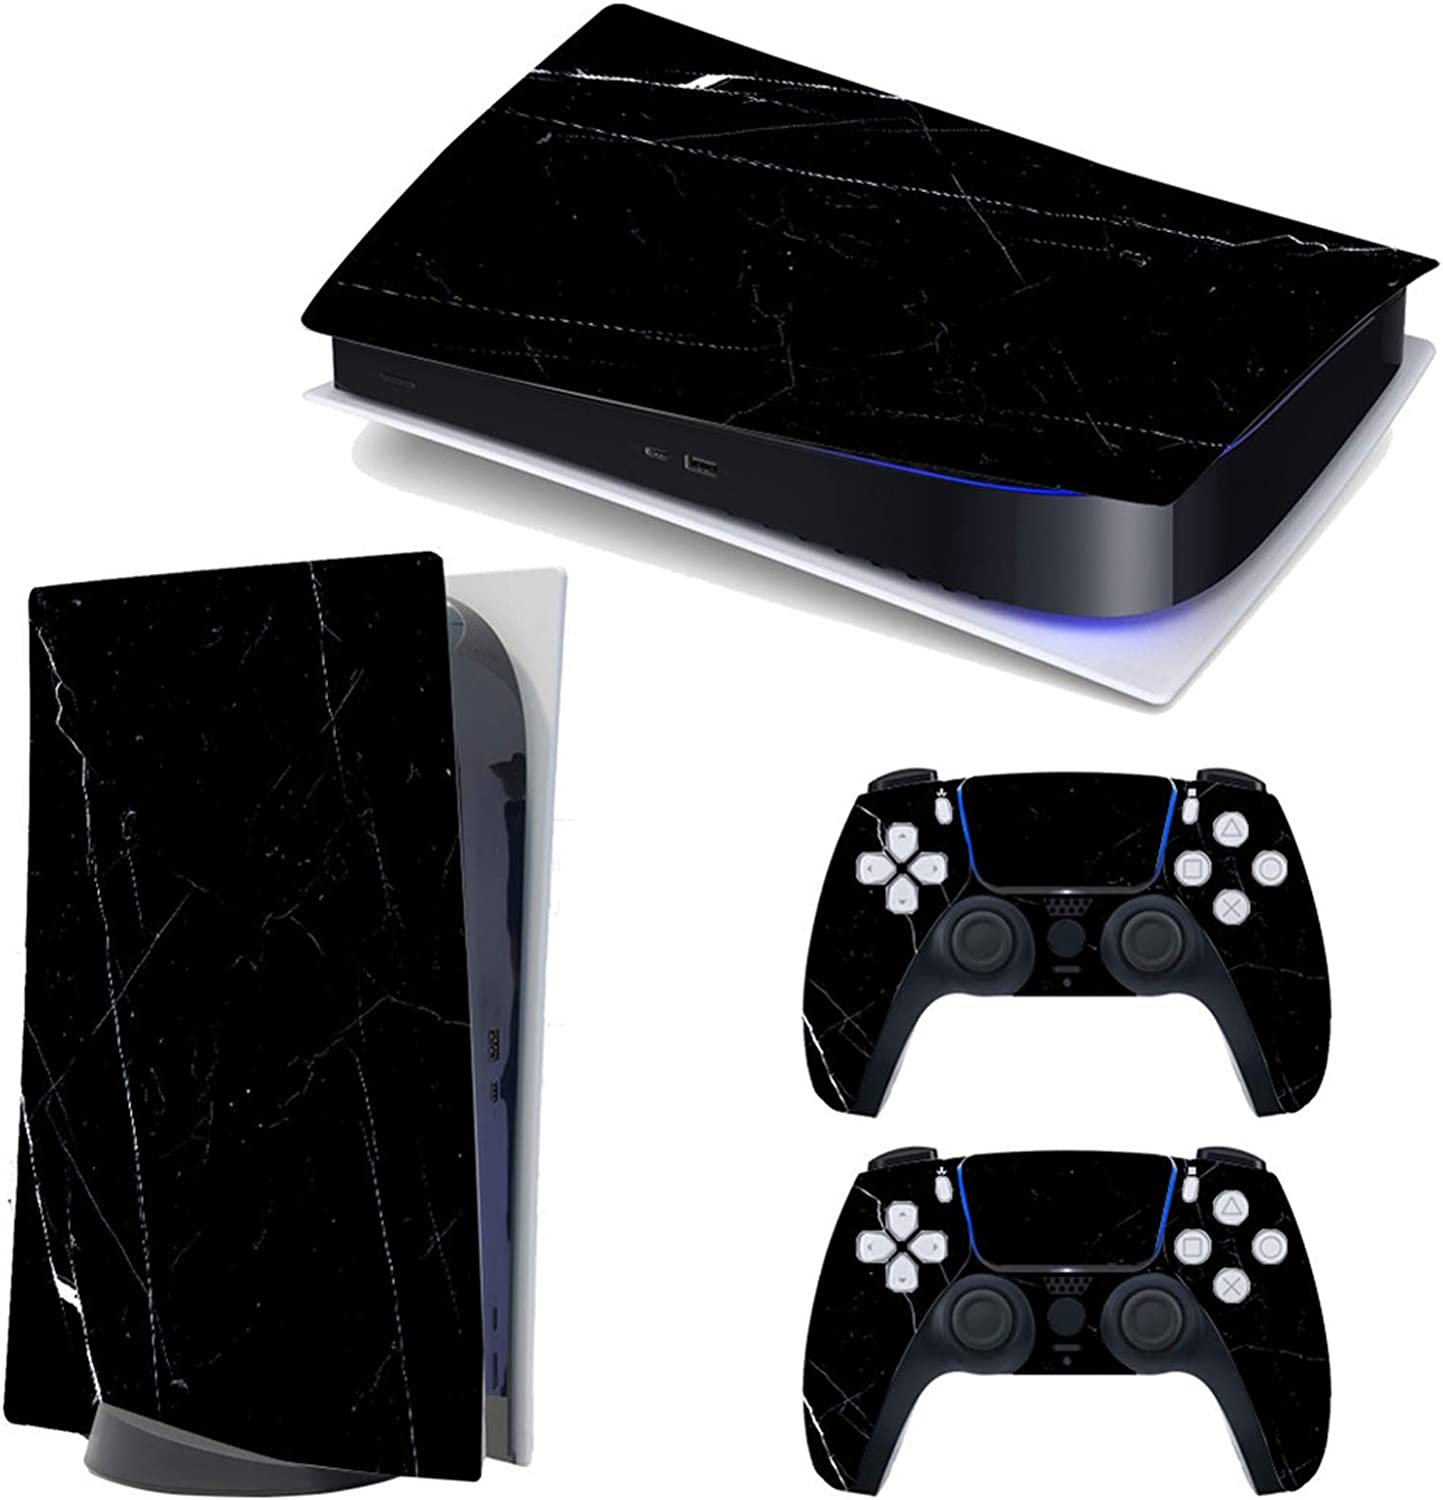 PS5 Console and DualSense Controller Skin Vinyl Decal Full Wrap Cover Stickers for Sony Playstation 5 PS5 Skin